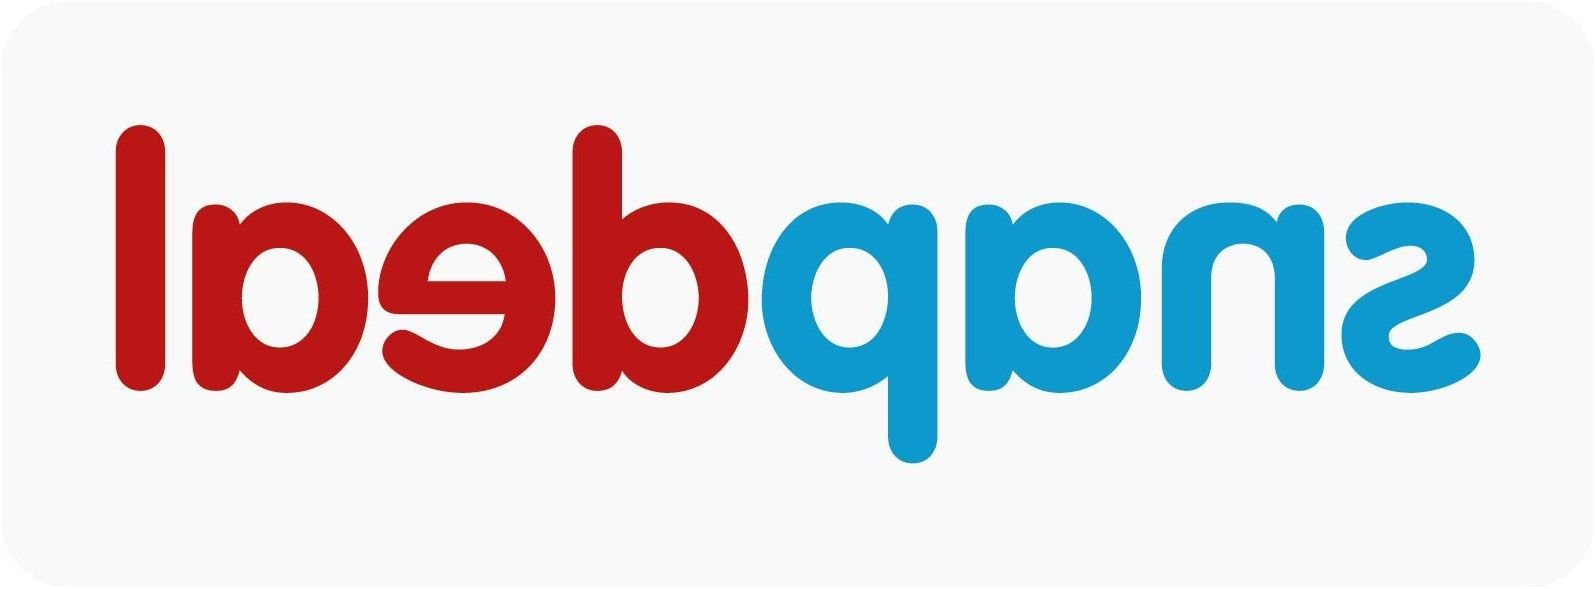 snapdeal coupons snapdeal promo codes offers from Snapdeal Promo ...